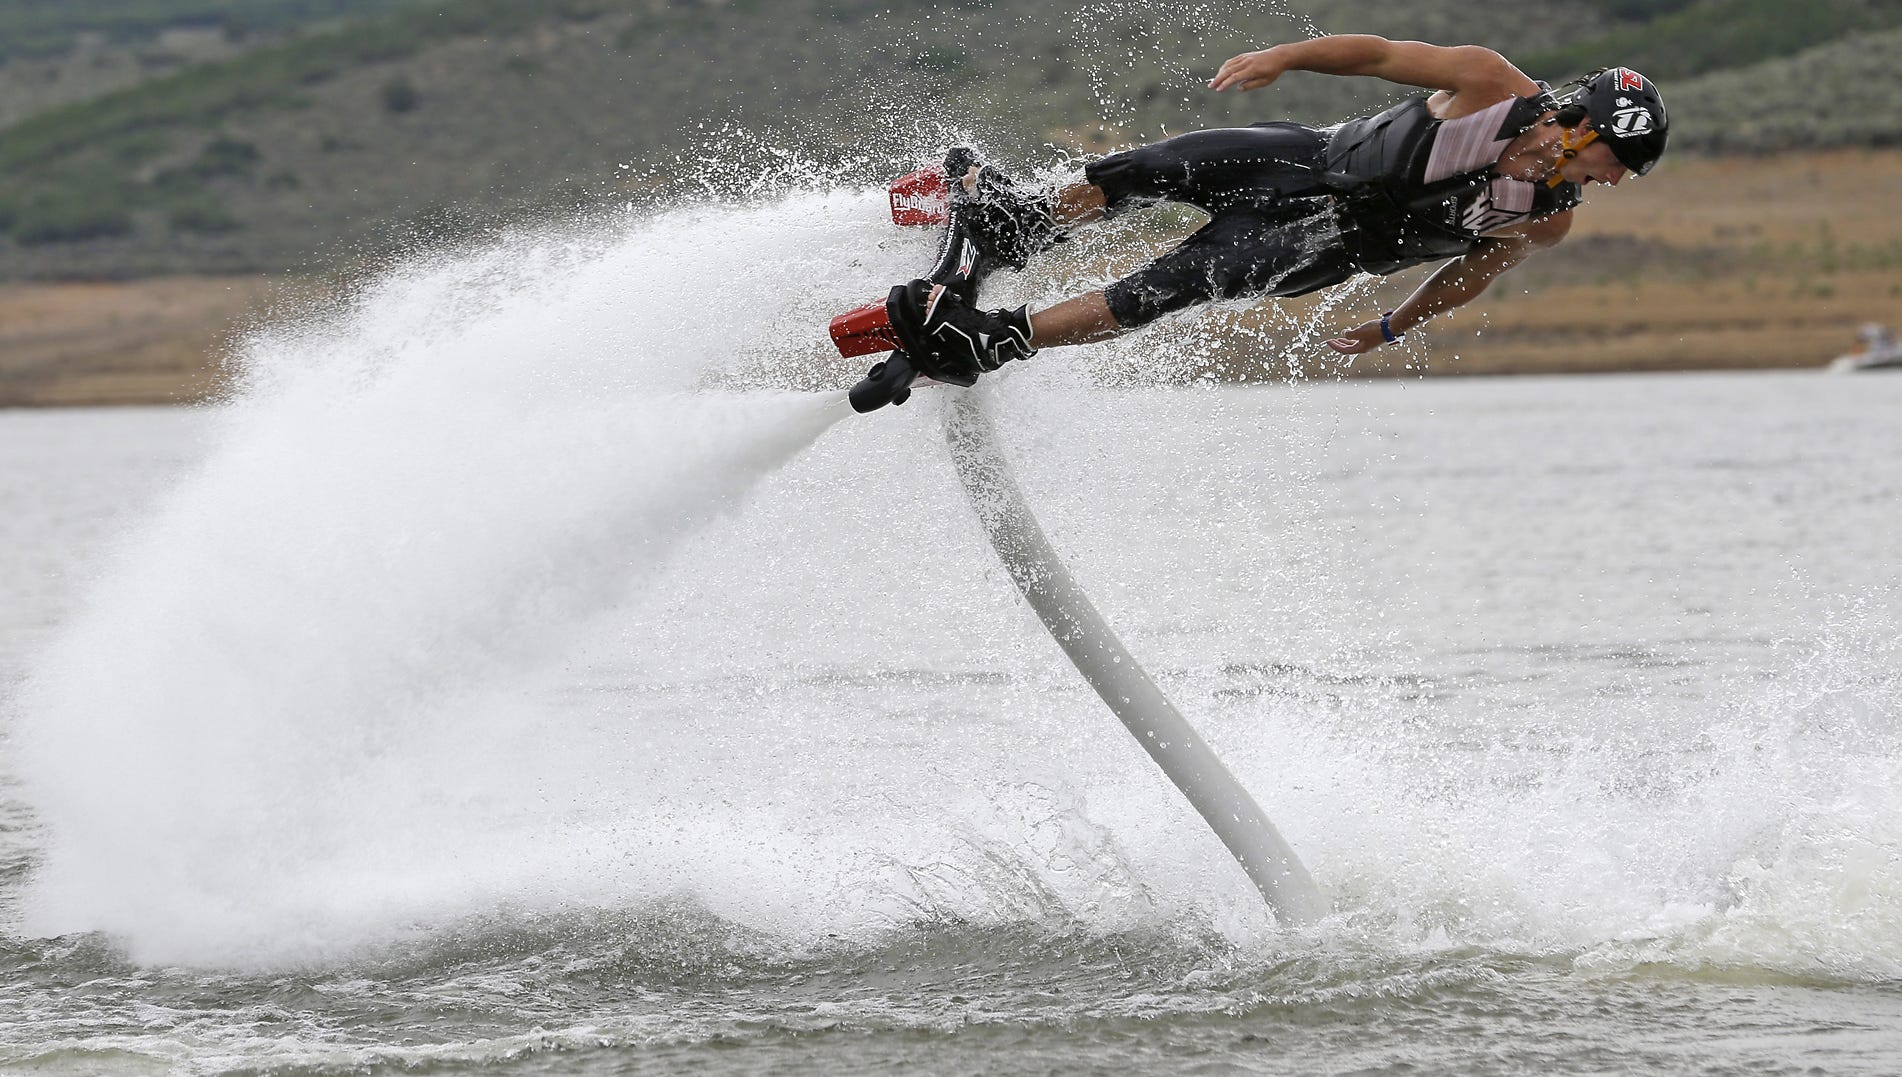 Chase Shaw, an instructor with Rocky Mountain Flyboard, demonstrates his technique.